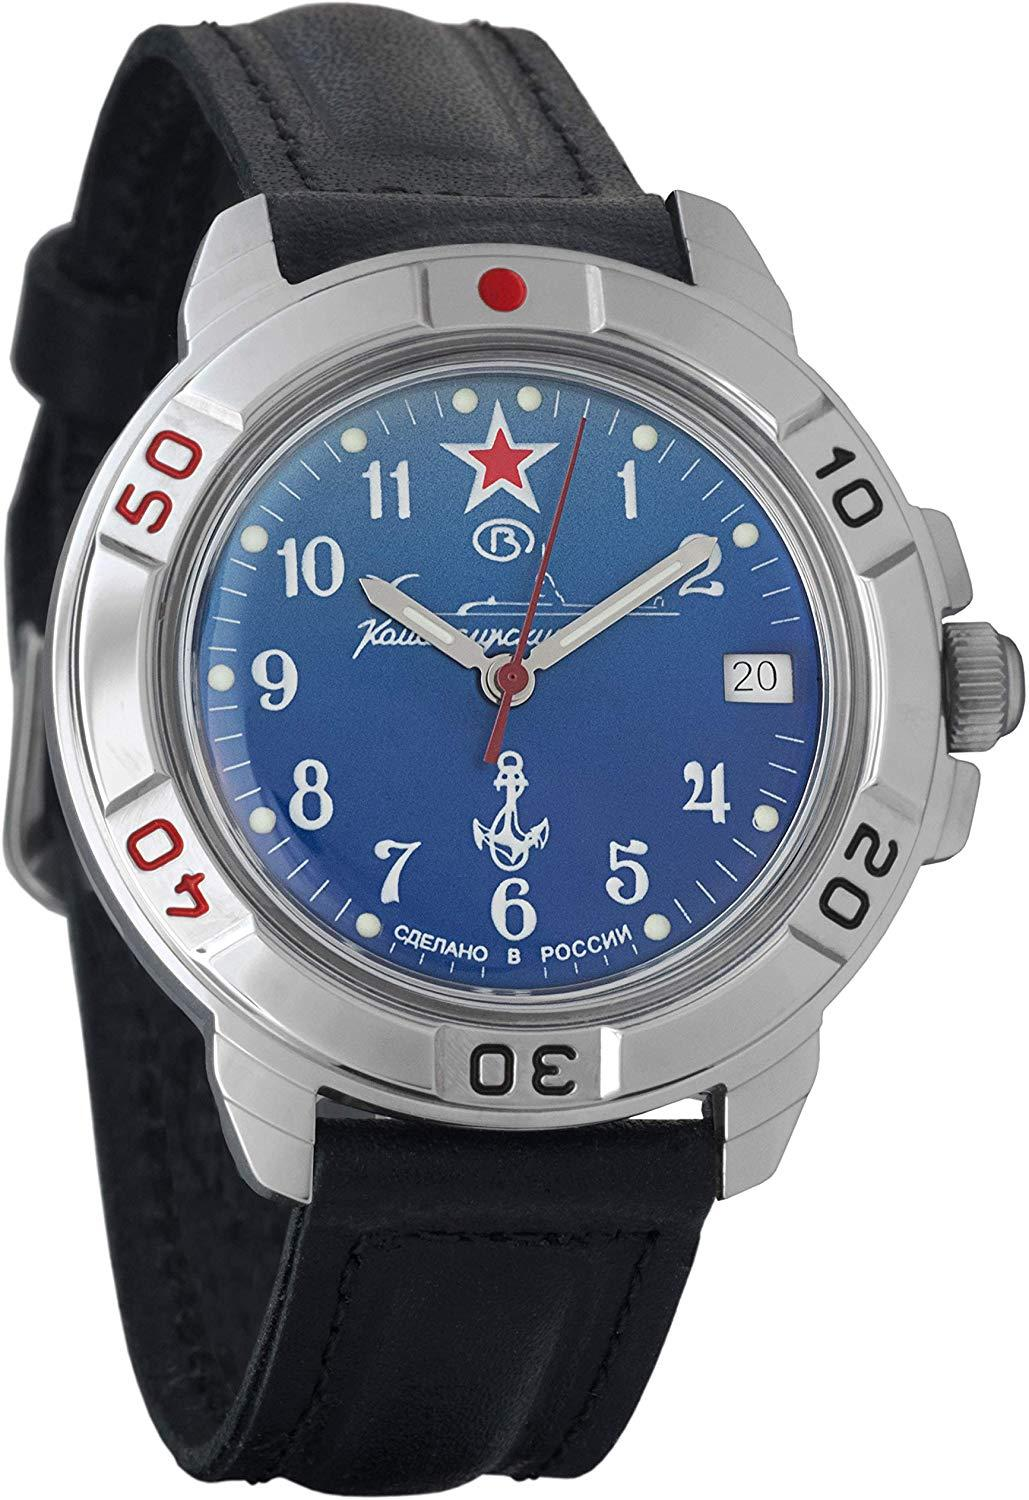 Watch Vostok Komandirskie 431289 Mechanical Hand Winding With Blue Dial And Underwater Boat